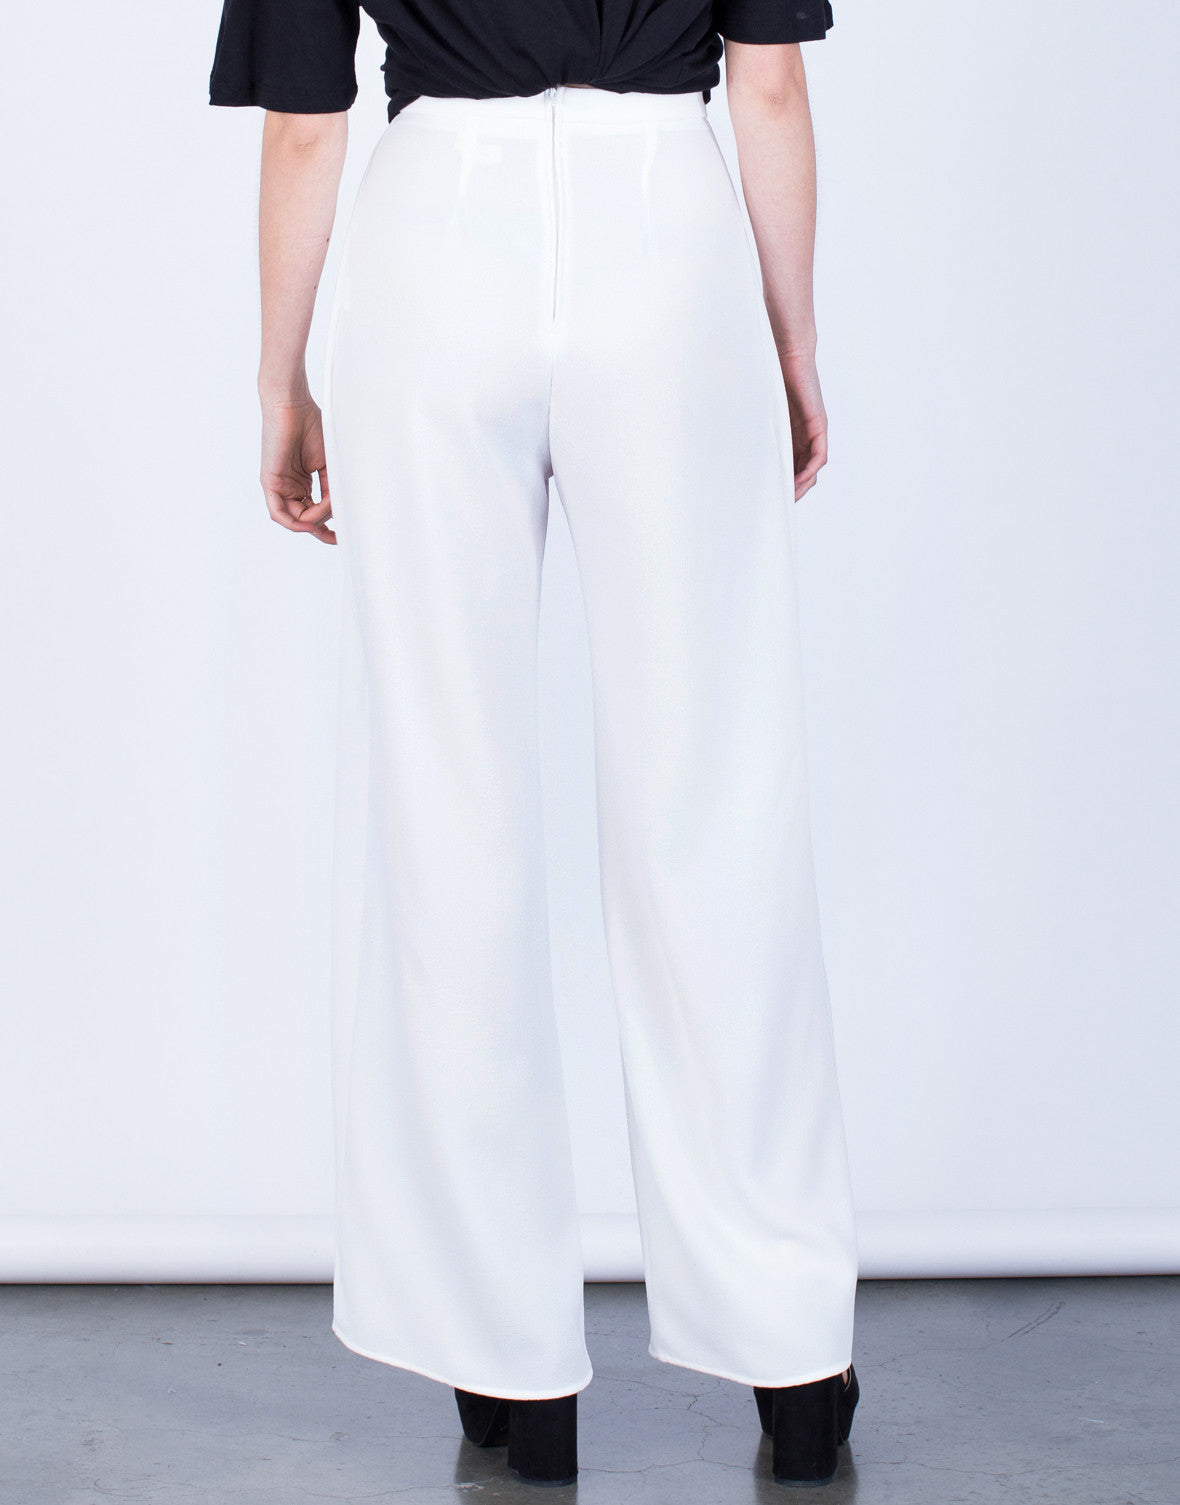 Back View of Show Me Palazzo Pants